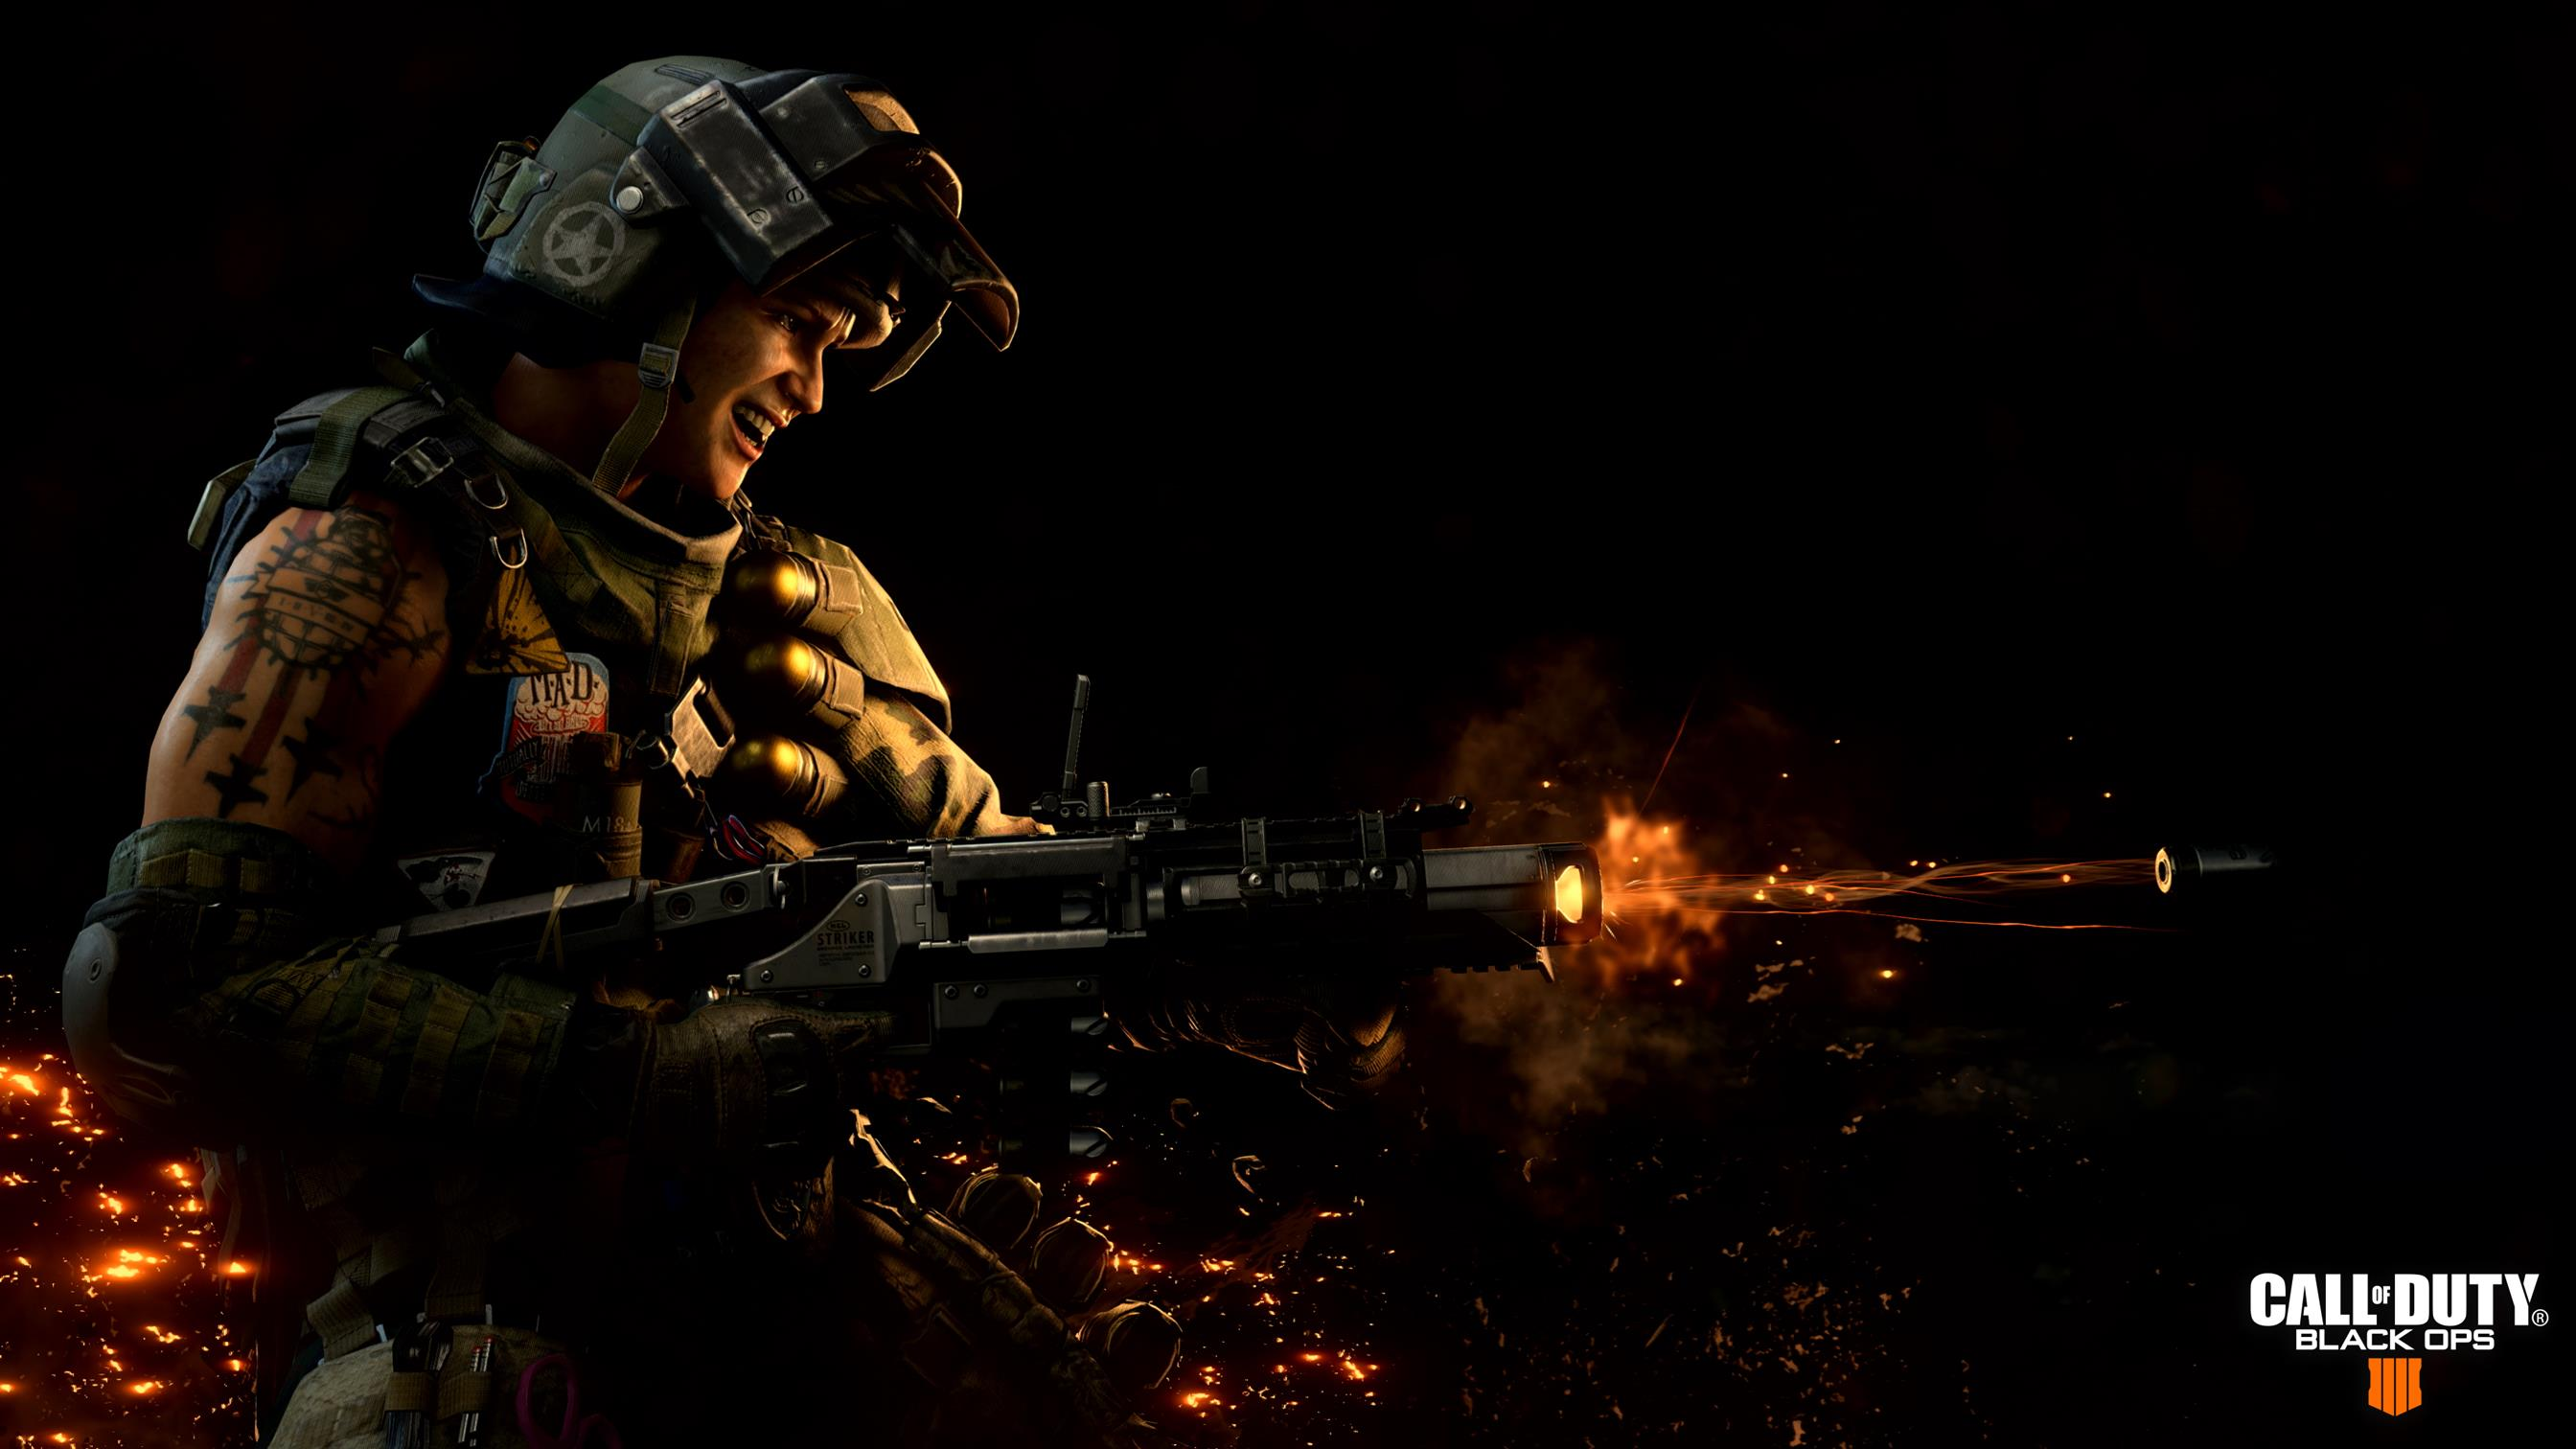 Call of Duty: Black Ops 4 Blackout Gets First Adrenaline-Fueled Trailer